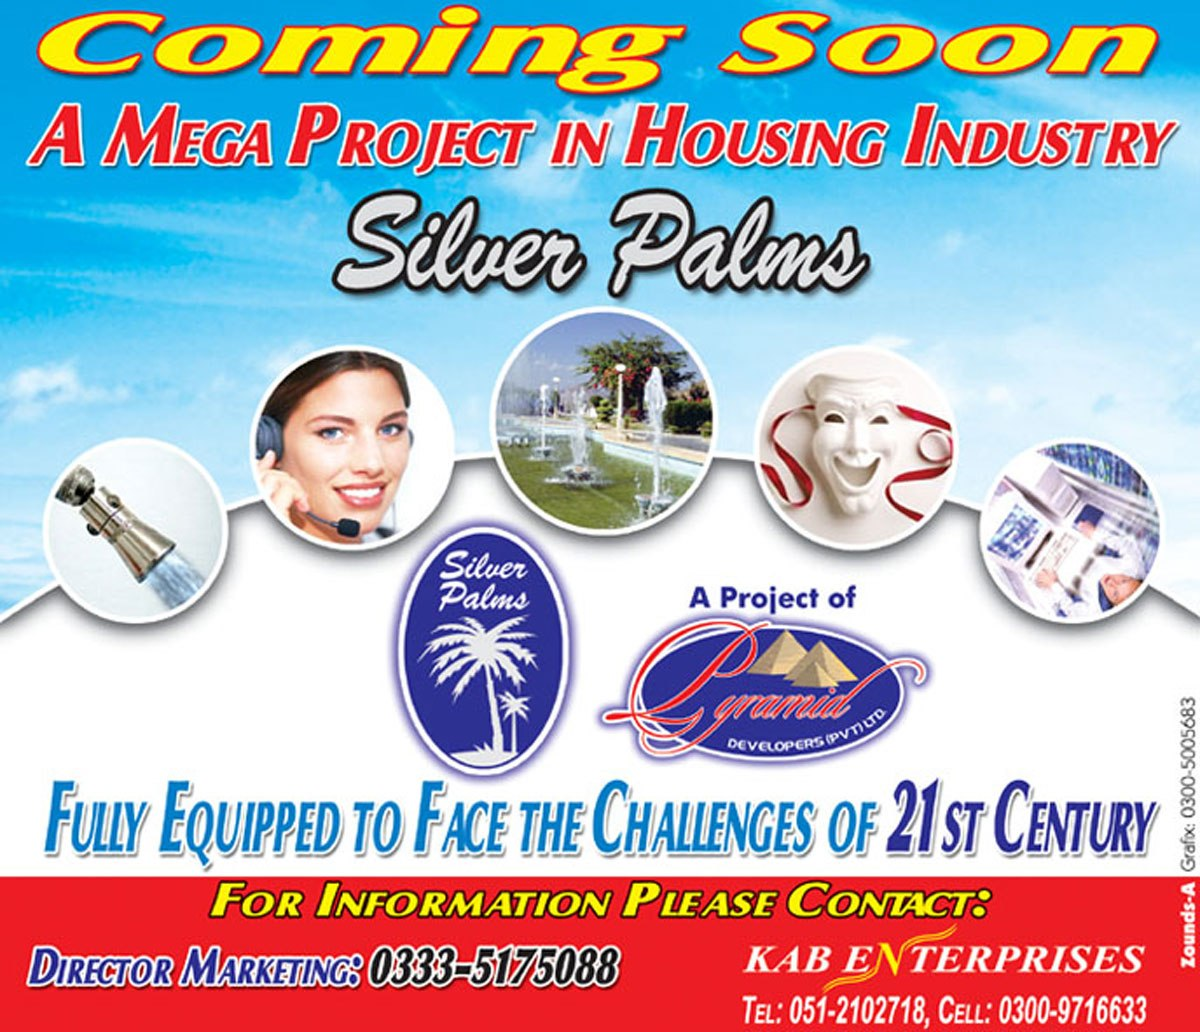 Silver-Palms-Comming-Soon